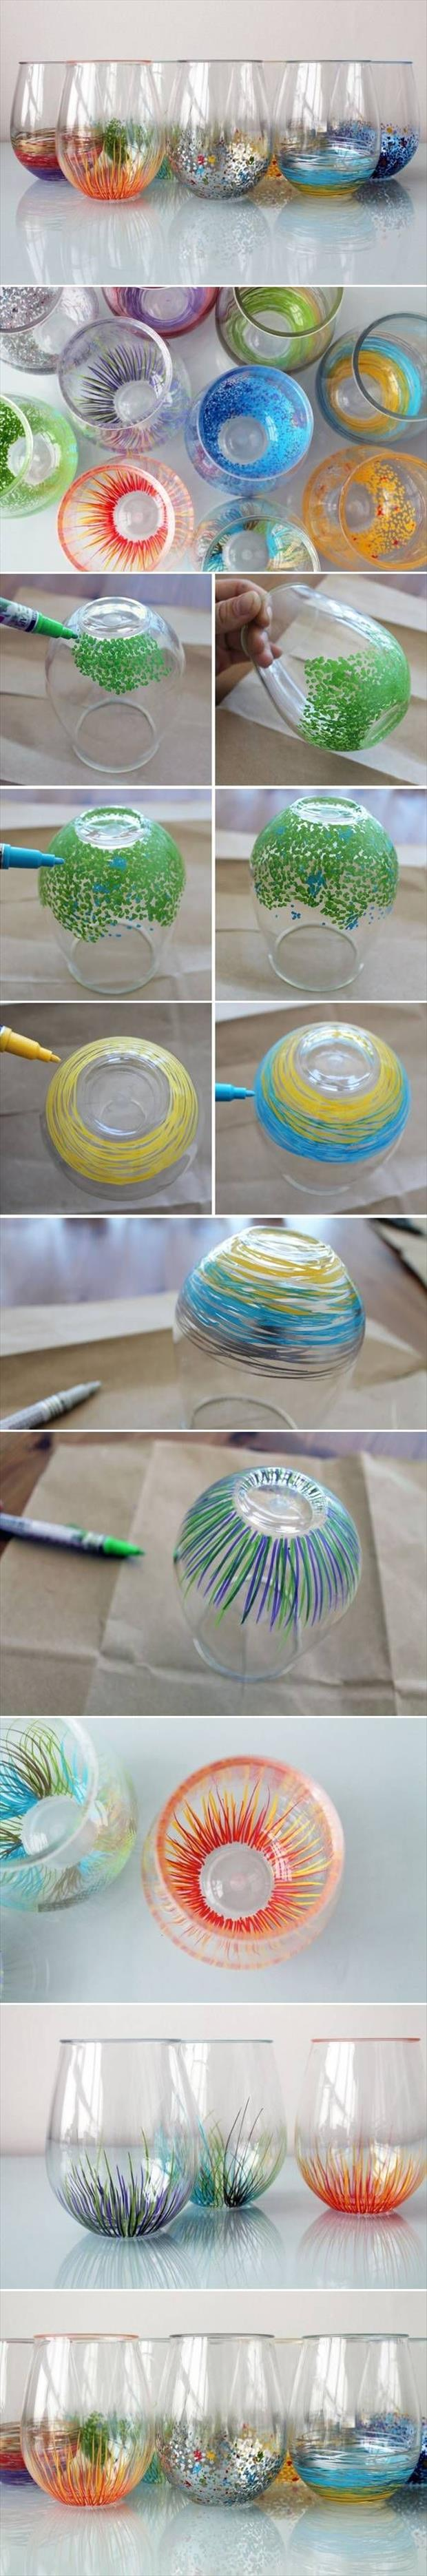 do it yourself crafts (9)